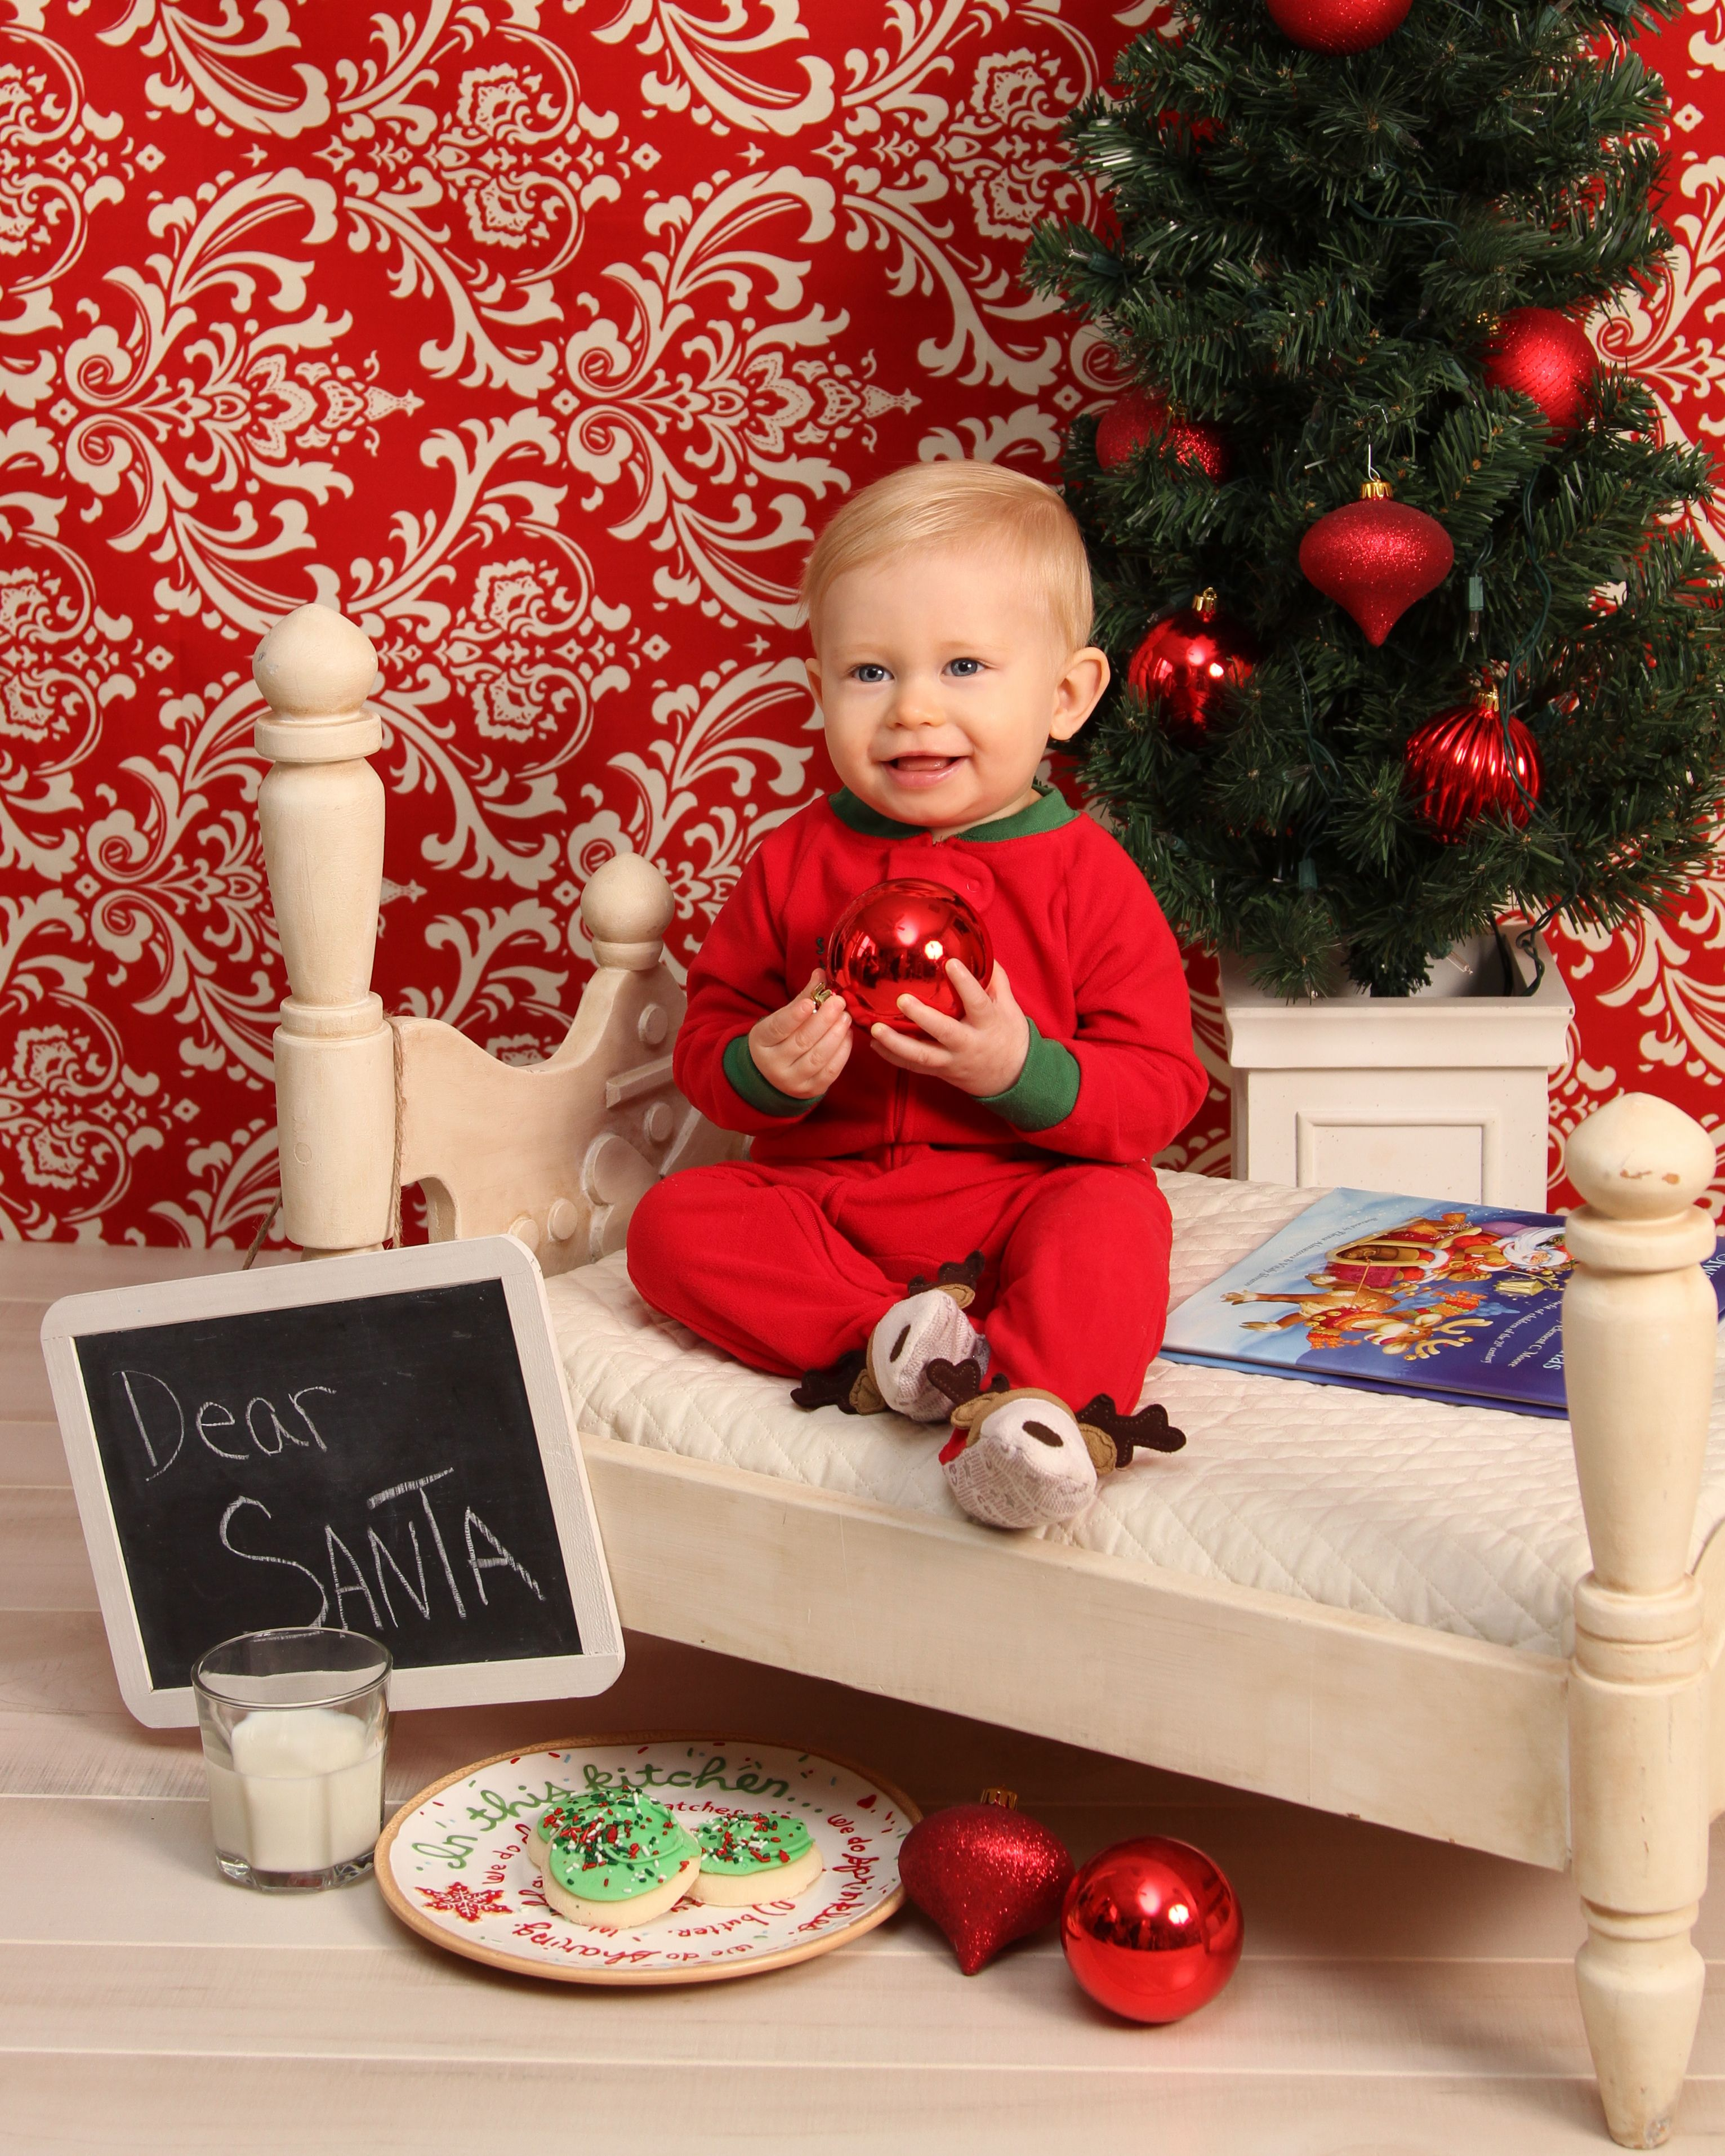 Christmas Portraits Waiting For Santa Toddler Portraits One Year Old Boy Baby Christmas Photography Family Christmas Pictures Toddler Christmas Photos